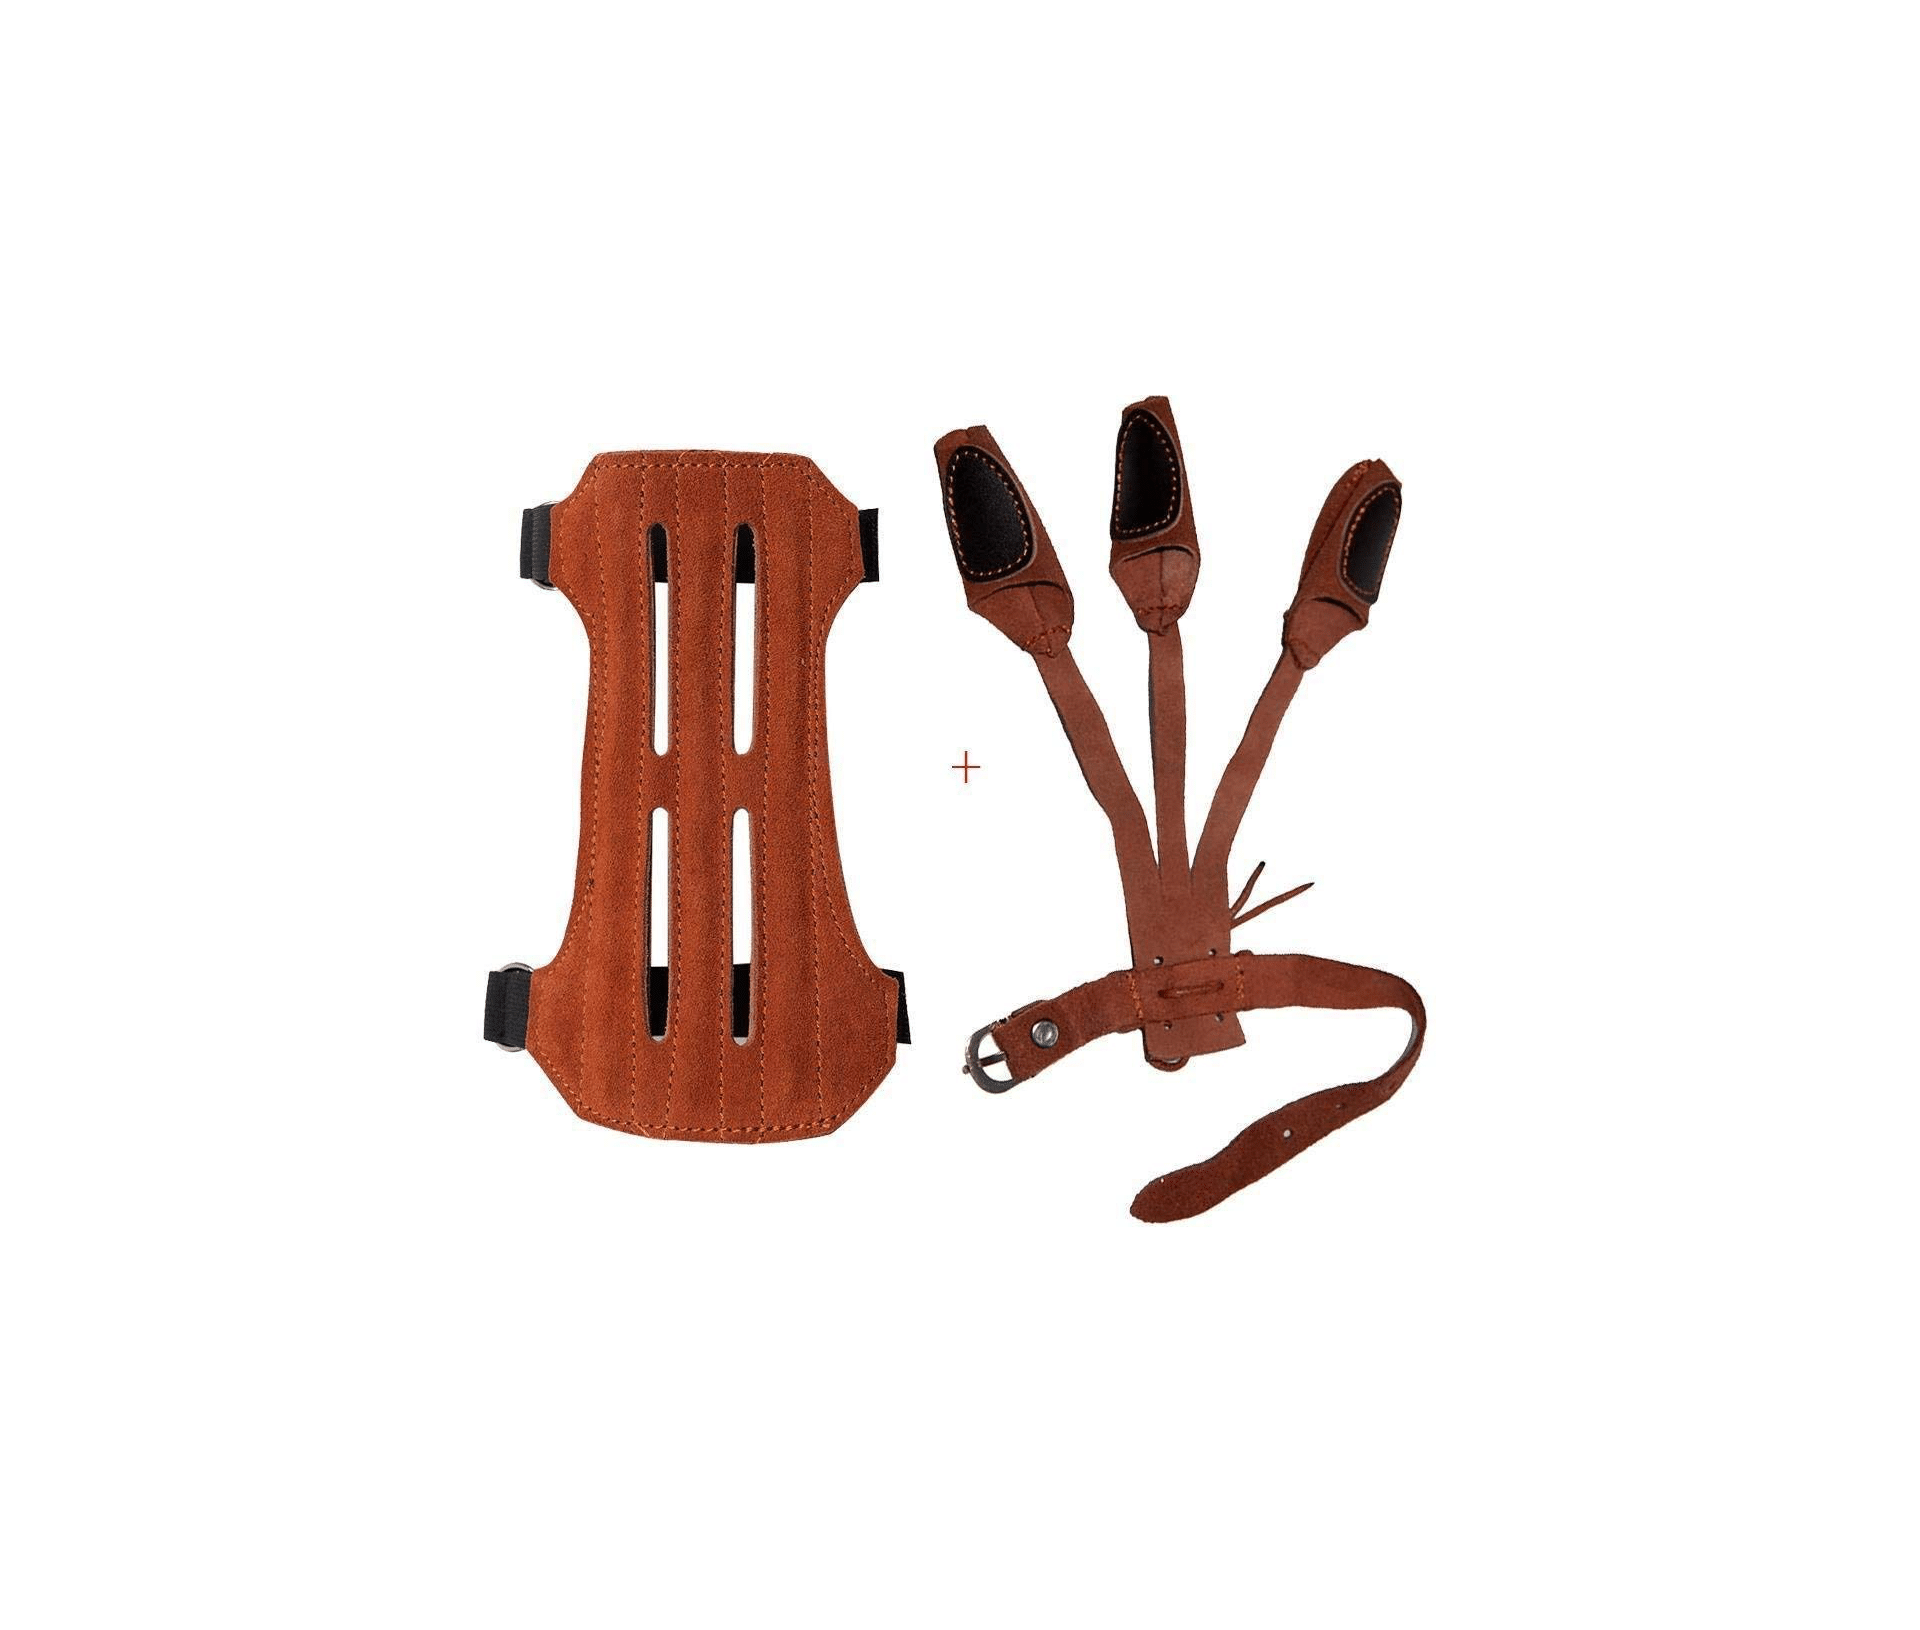 TOPARCHERY Leather 2 Straps Arm Guard & 3 Finger Protective Gloves for Recurve Compound Long Bow Hunting Shooting Brown